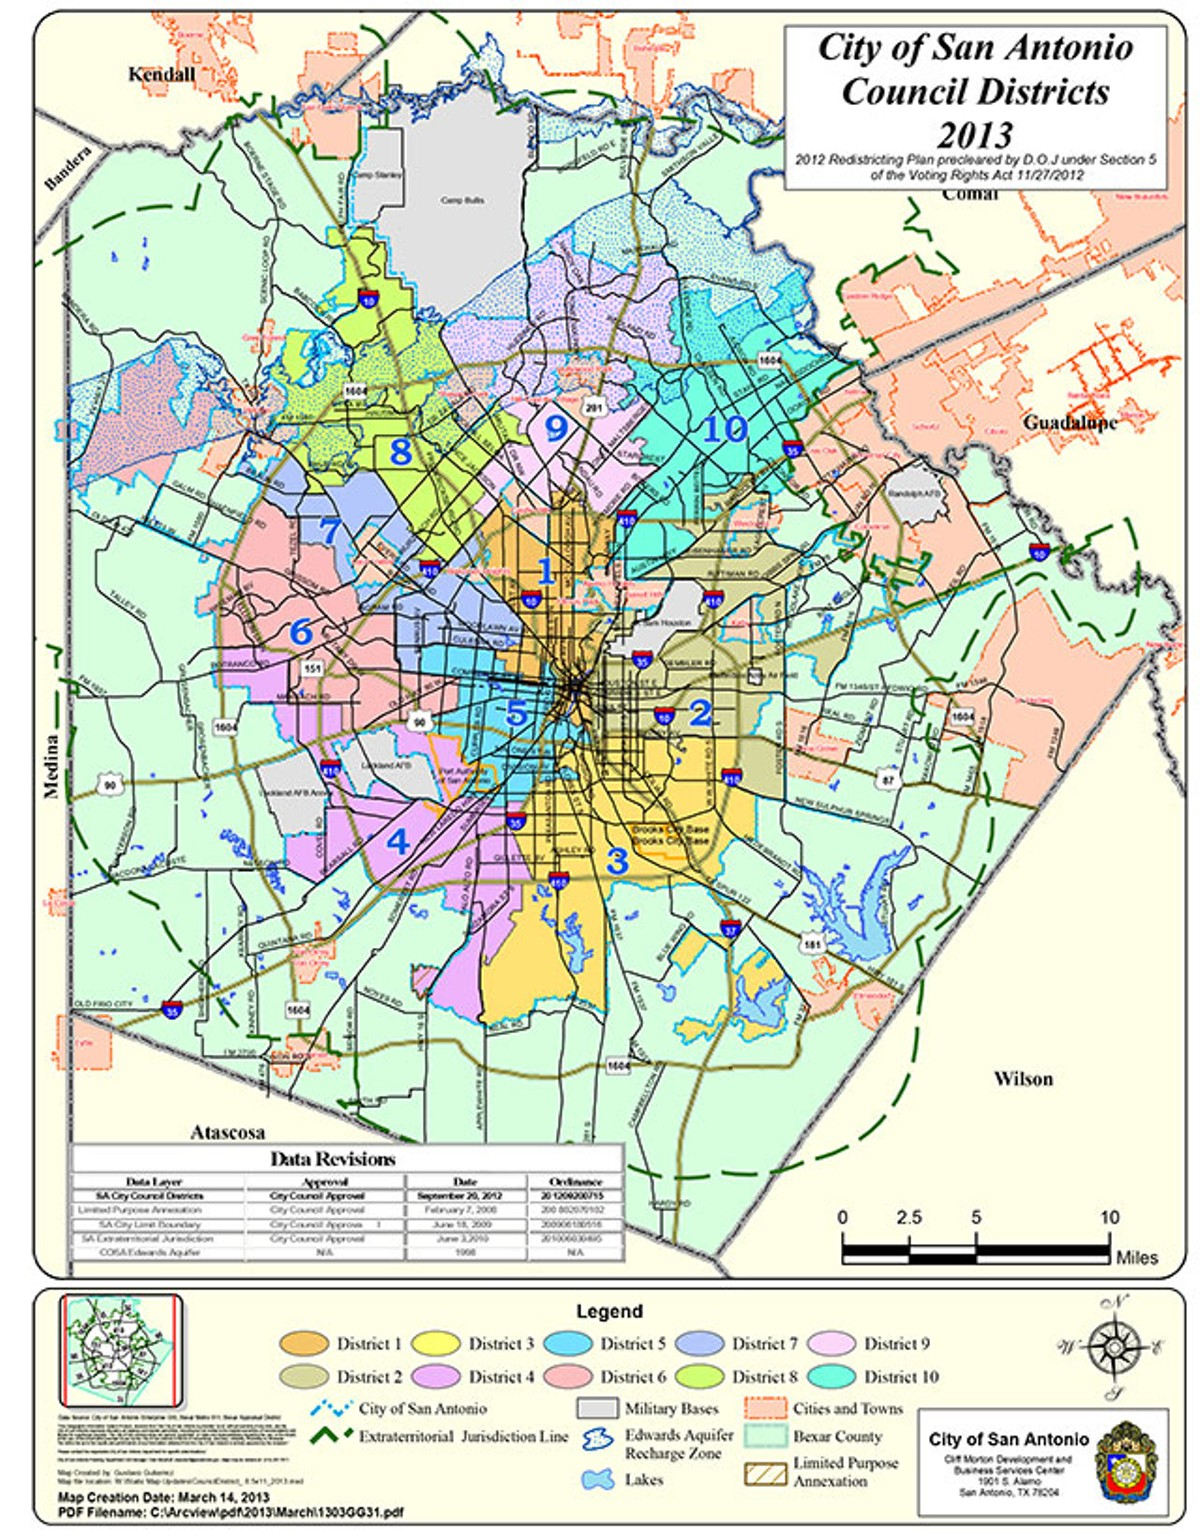 City Council and Mayoral Candidate Questionnaires | News Etc ... on austin 10-1 map, fresno district map, amarillo district map, south san francisco district map, new braunfels district map, fargo district map, charlotte district map, south bend district map, mesa district map, city district map, brazoria county district map, north miami district map, denton county district map, northern virginia district map, duluth district map, new england district map, rio rancho district map, anaheim district map, key west district map, saint paul district map,